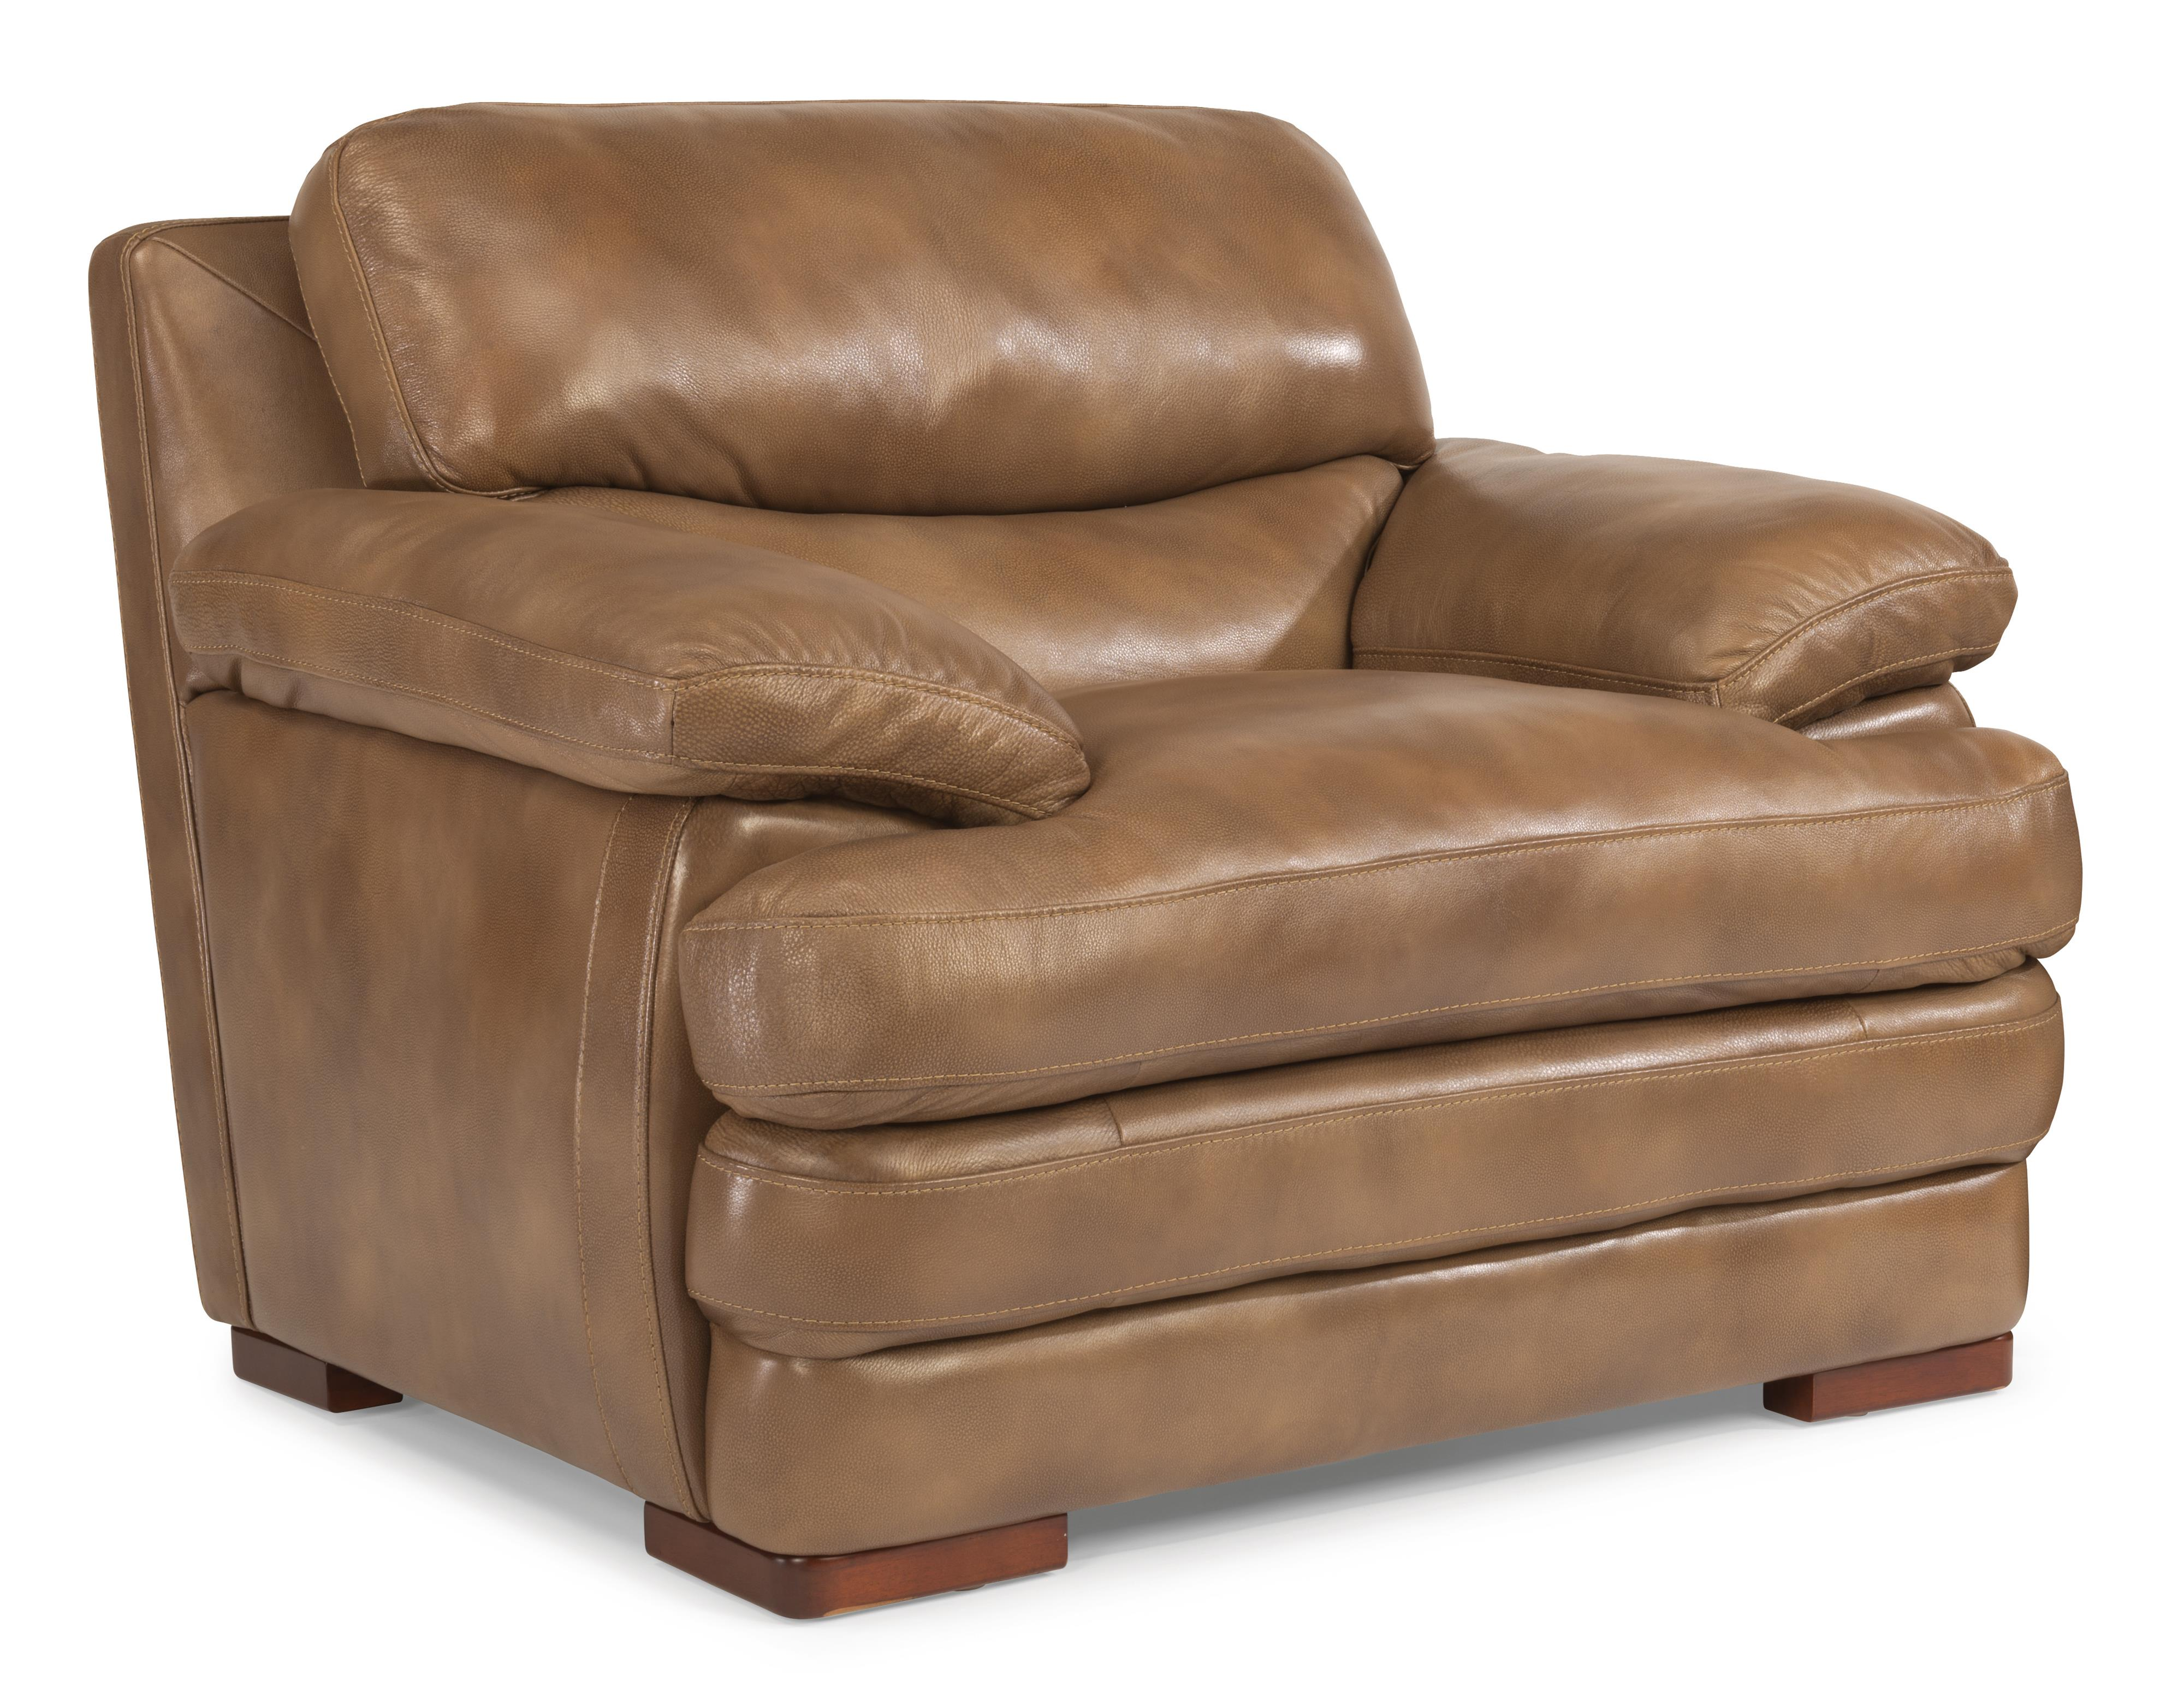 Flexsteel Latitudes - Dylan Leather Chair - Item Number: 1127-10-908-06